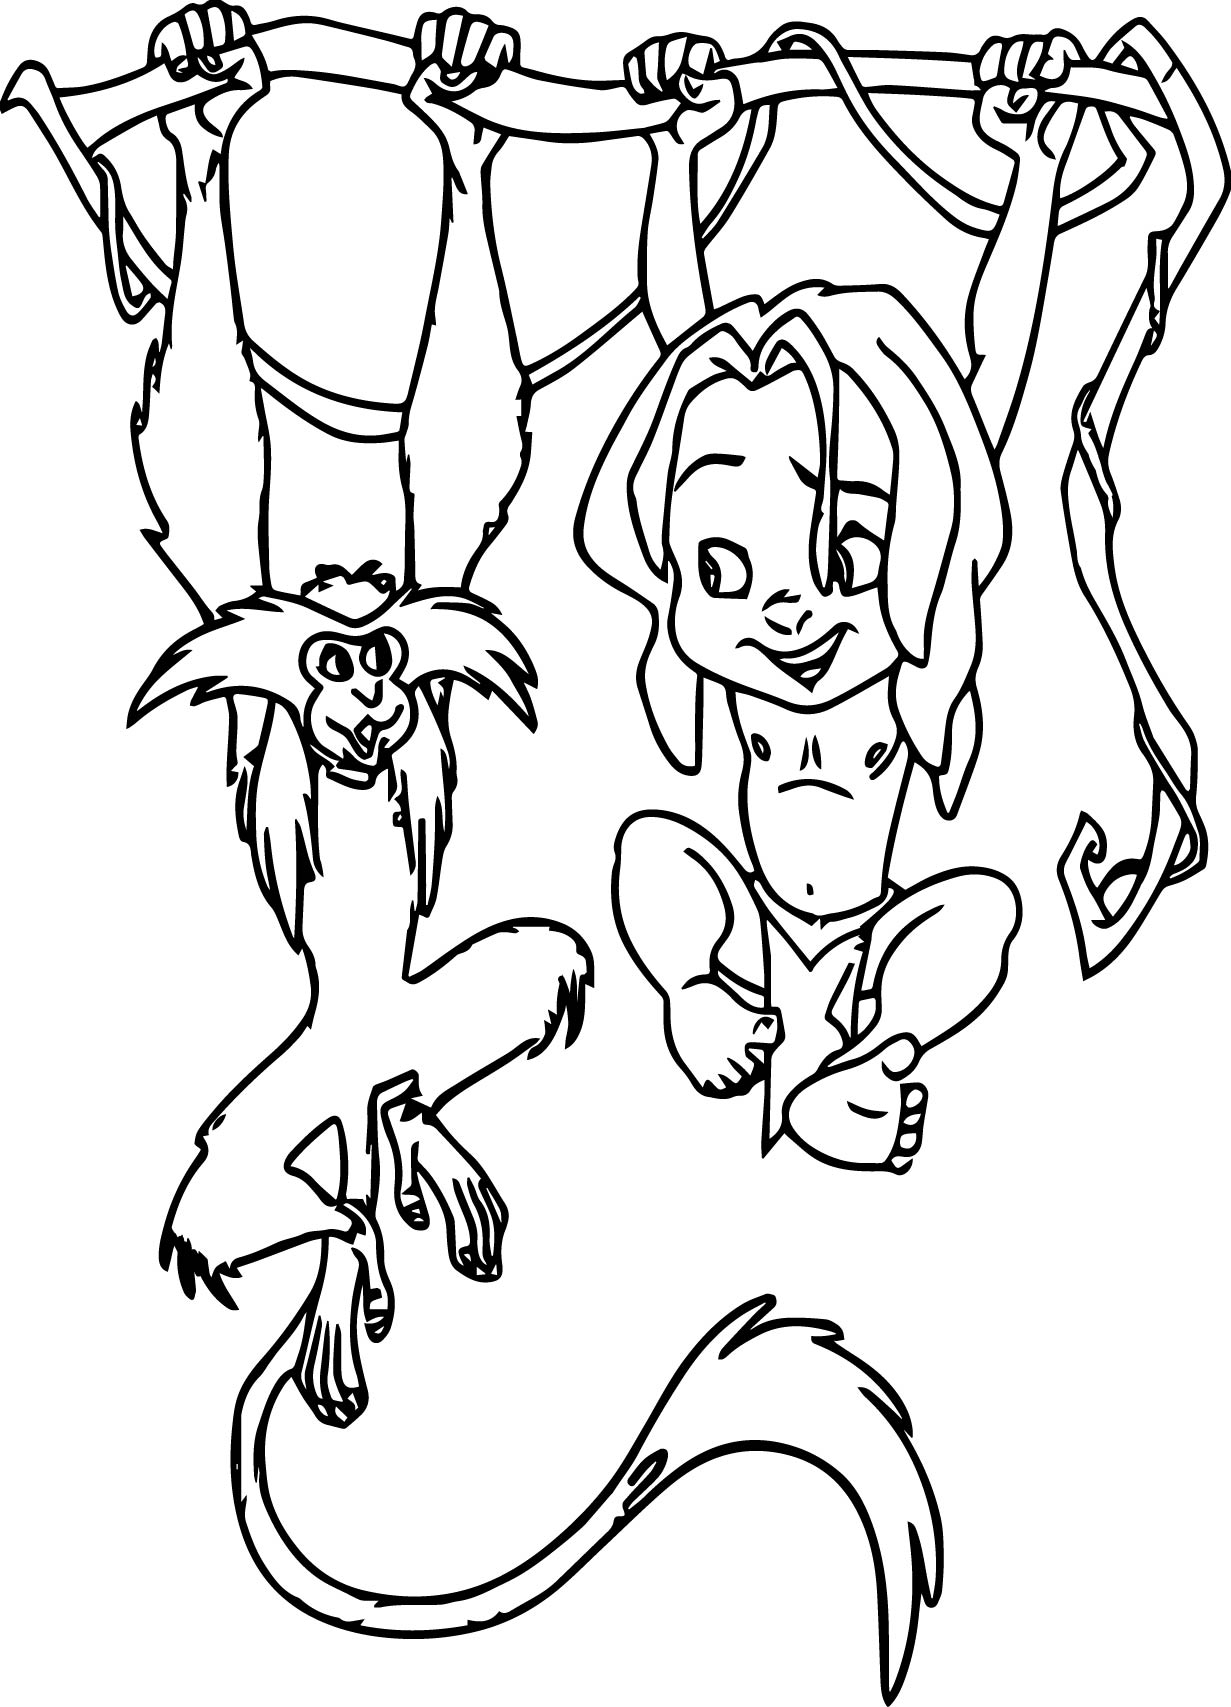 Young tarzan and monkey on tree coloring pages for Tarzan coloring pages